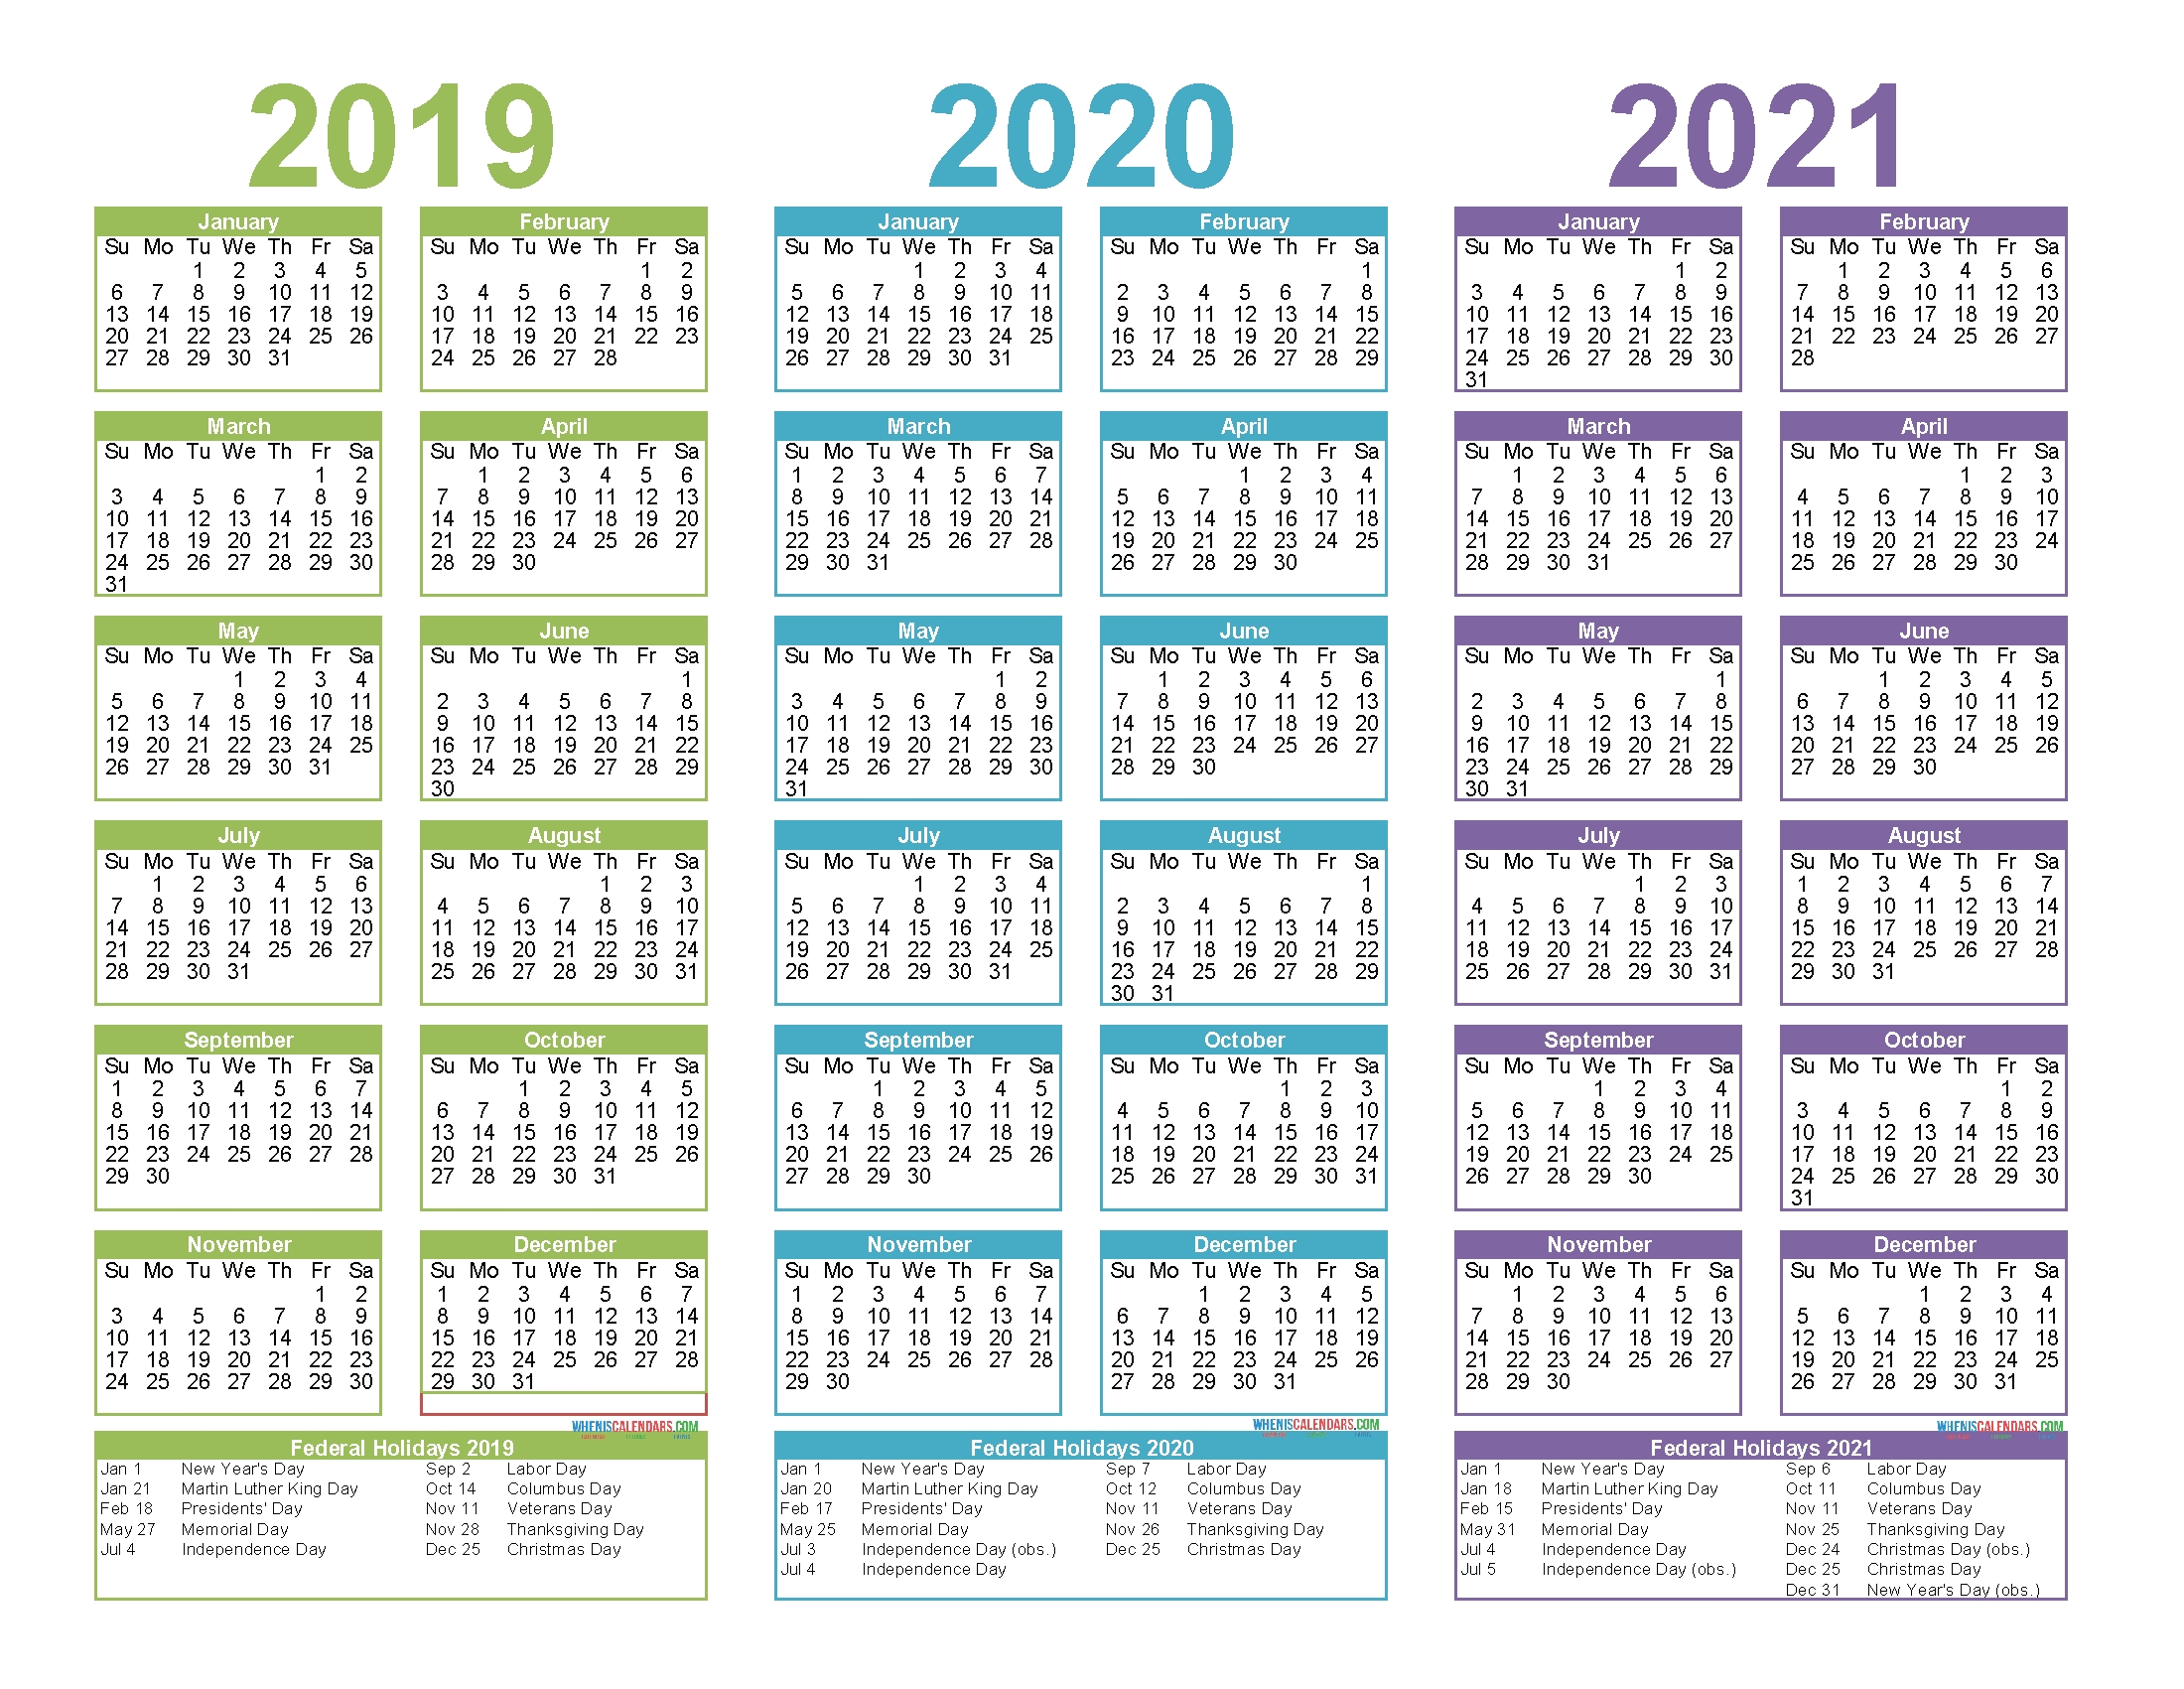 2019 To 2021 3 Year Calendar Printable Free Pdf, Word, Image with Free Printable Calendar For 2019 2020 2021